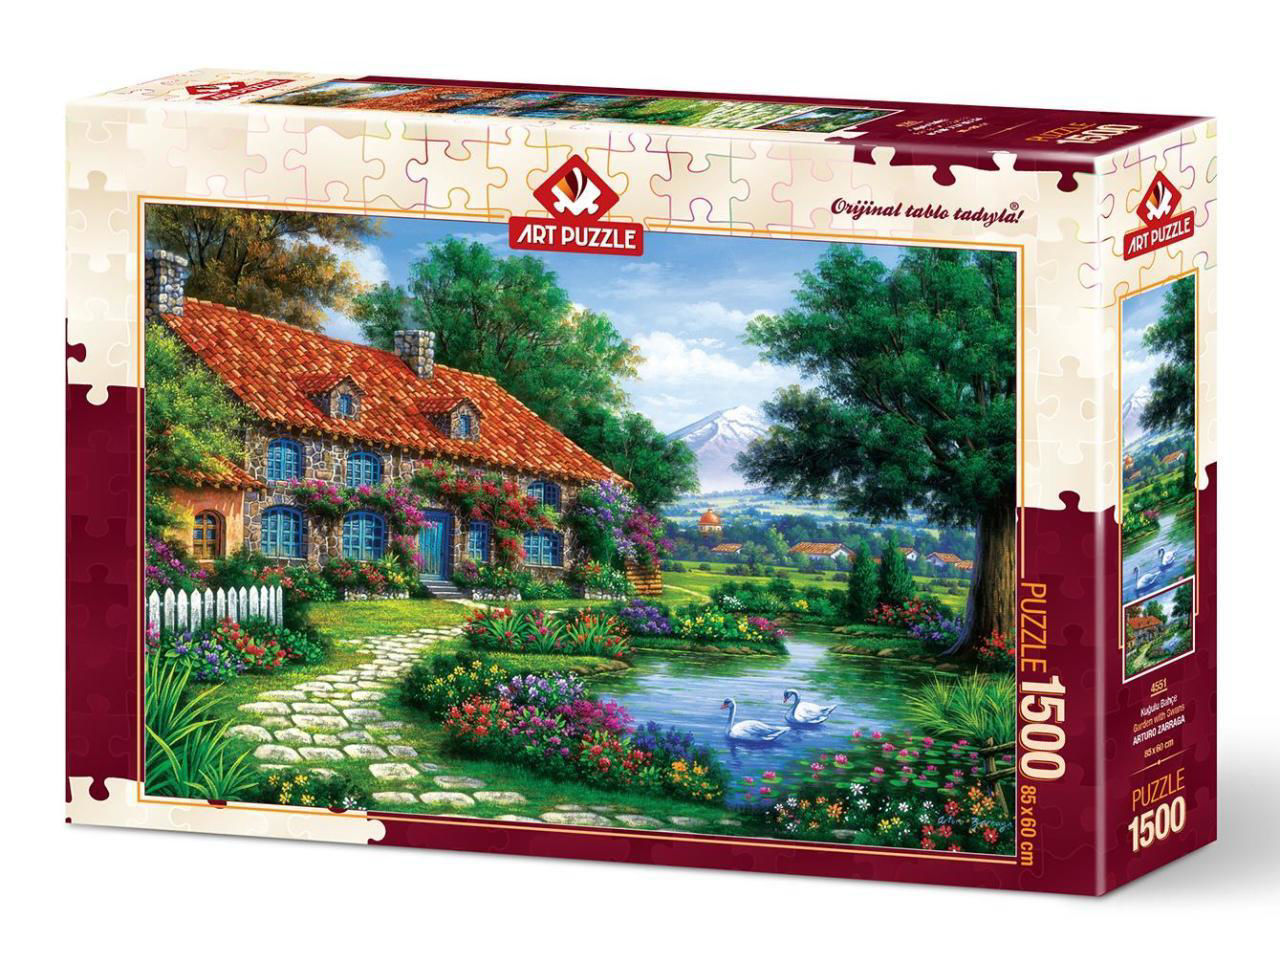 Image de ART PUZZLE 1500 PCS  GARDEN WITH SWANS 4551